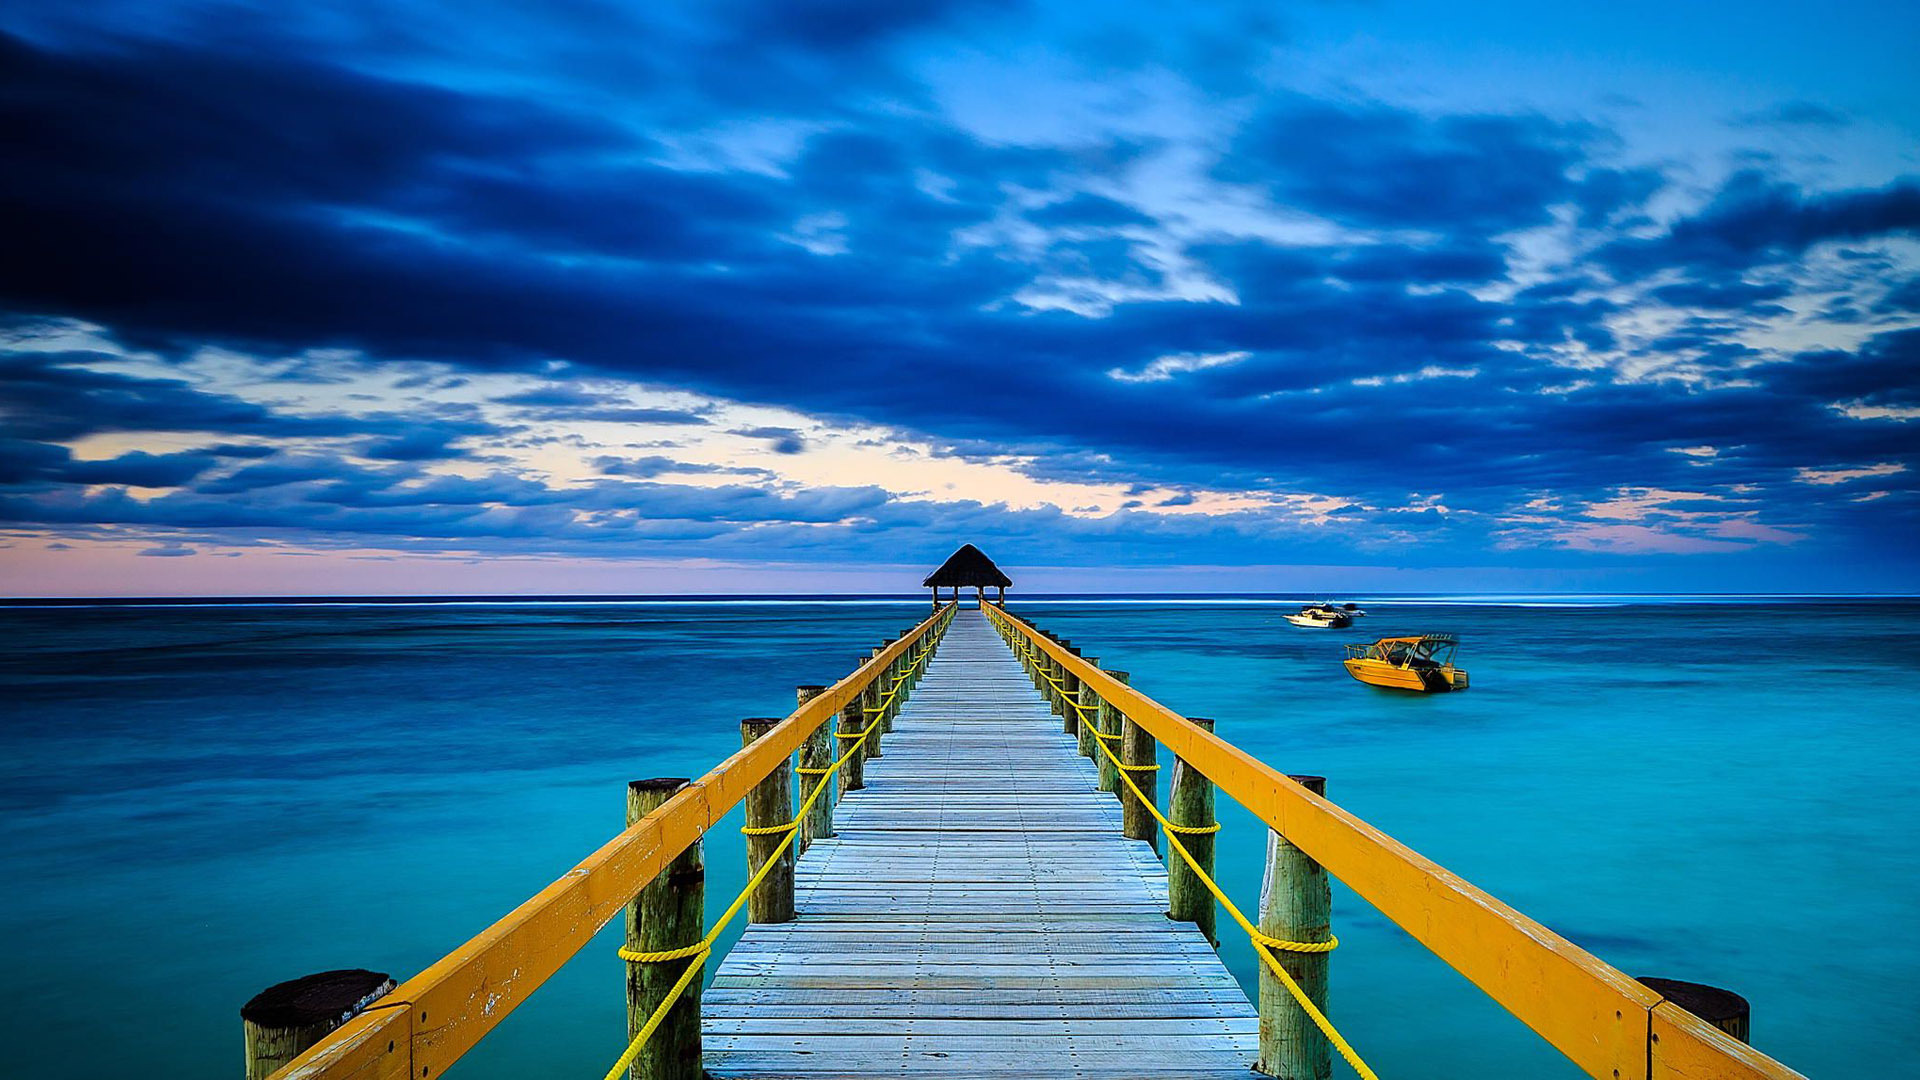 Ocean wallpaper wooden bridge hd desktop wallpapers 4k hd - Ocean pictures for desktop background ...